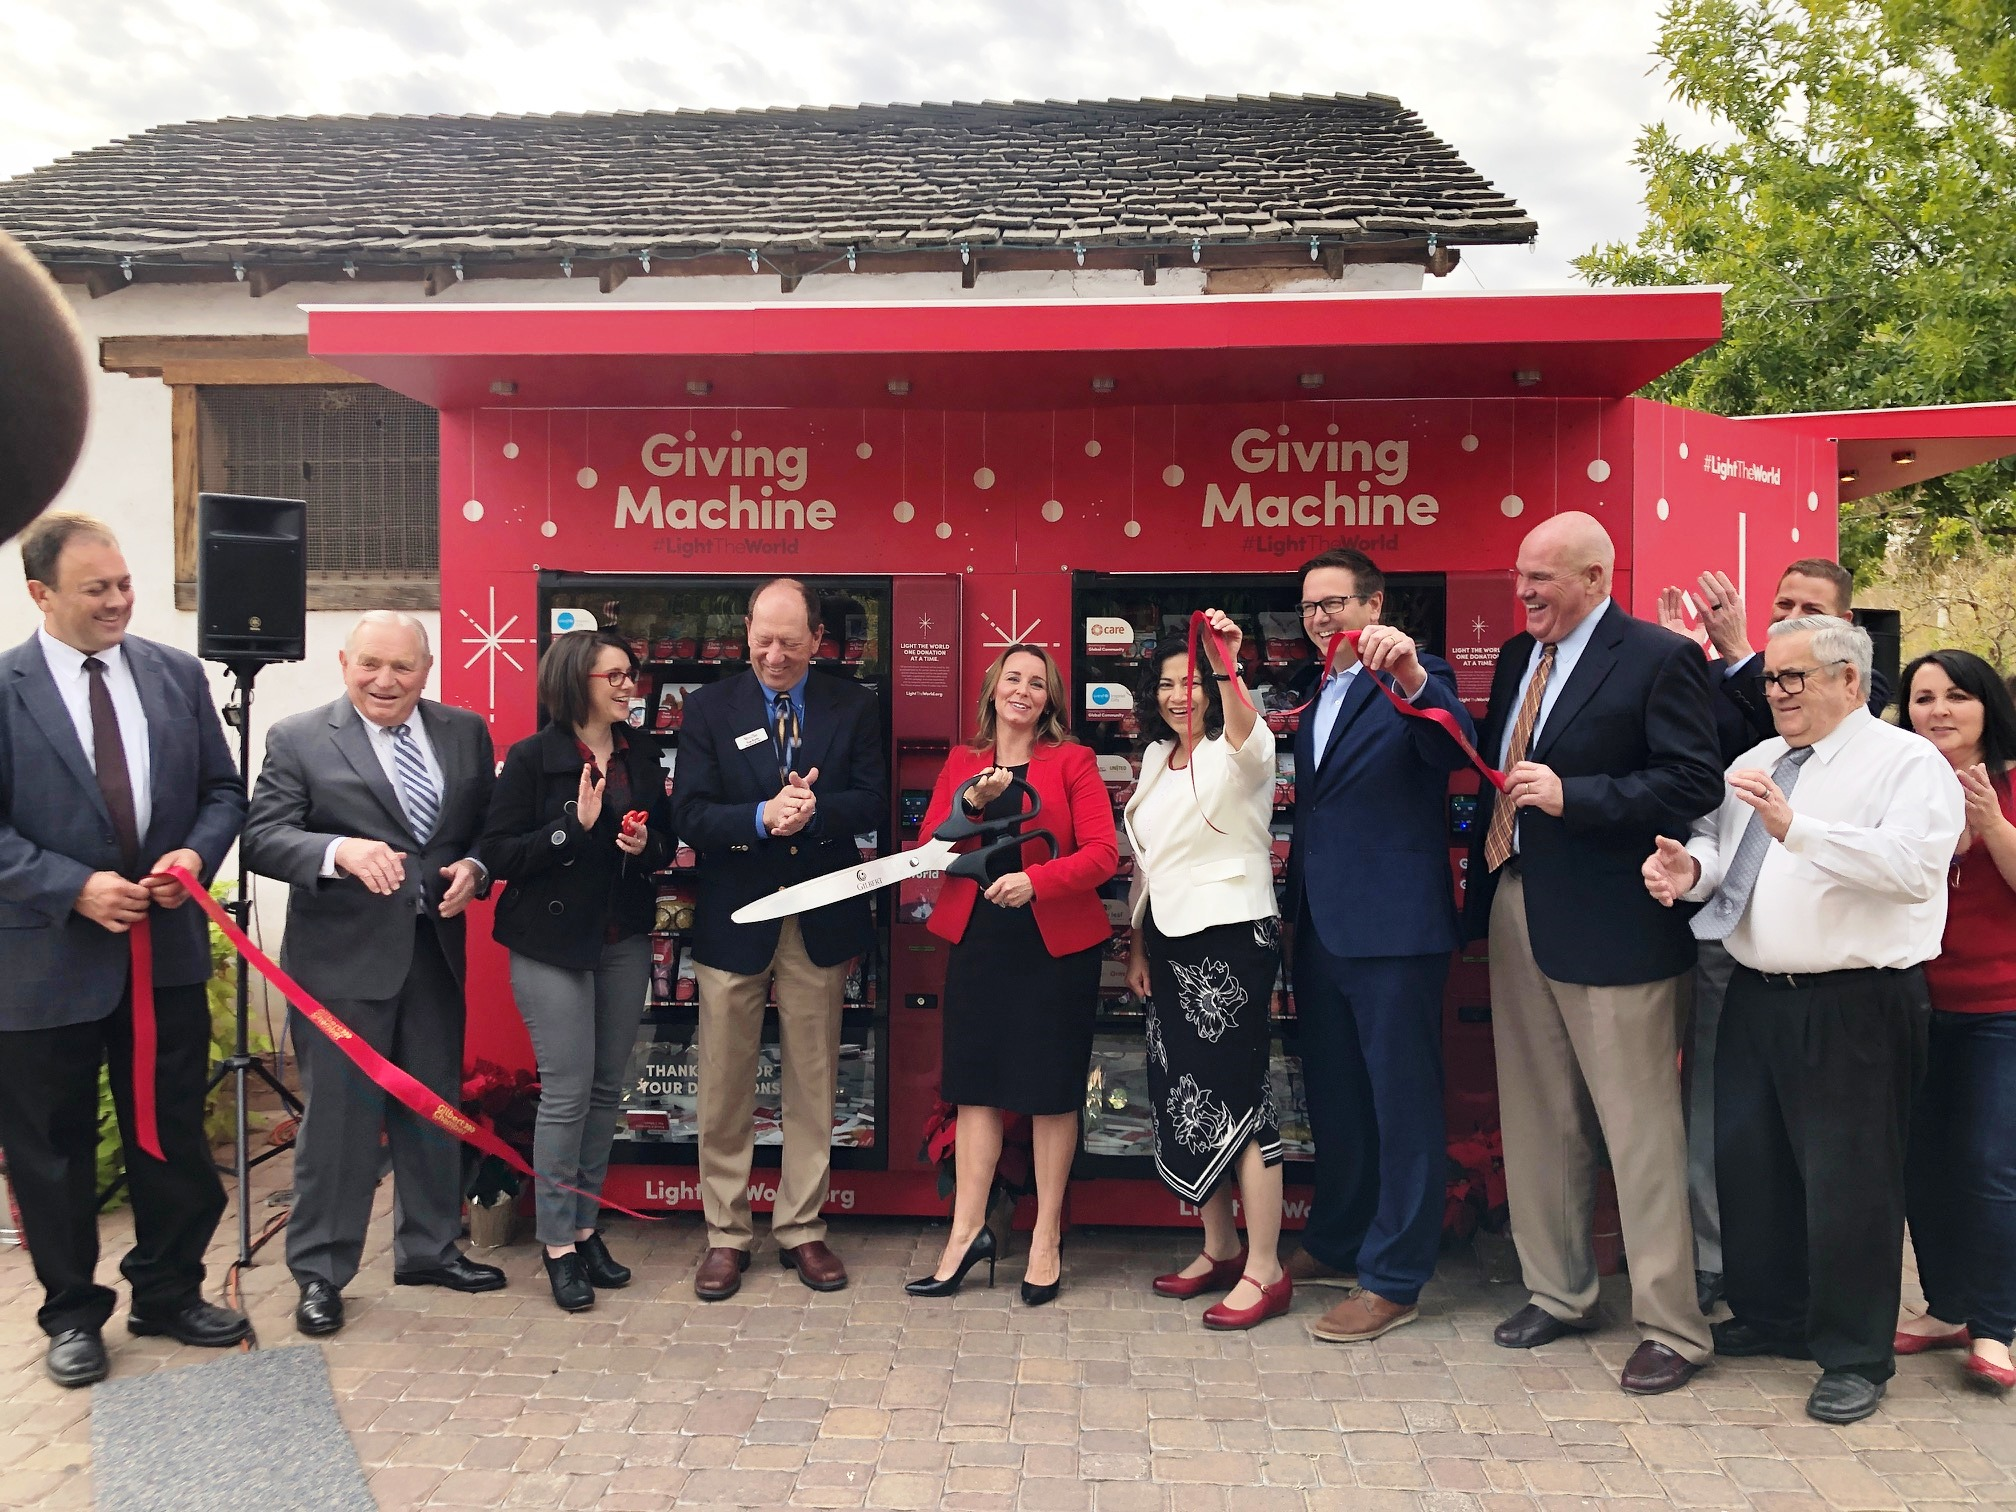 Gilbert Mayor Jenn Daniels cuts the ribbon for the opening of the giving machines on Thursday, Nov. 29, accompanied by Sister Reyna Aburto and leaders of local nonprofits that will benefit from donations made in Gilbert, Arizona. The giving machines are part of the Church's popular #LightTheWorld campaign.